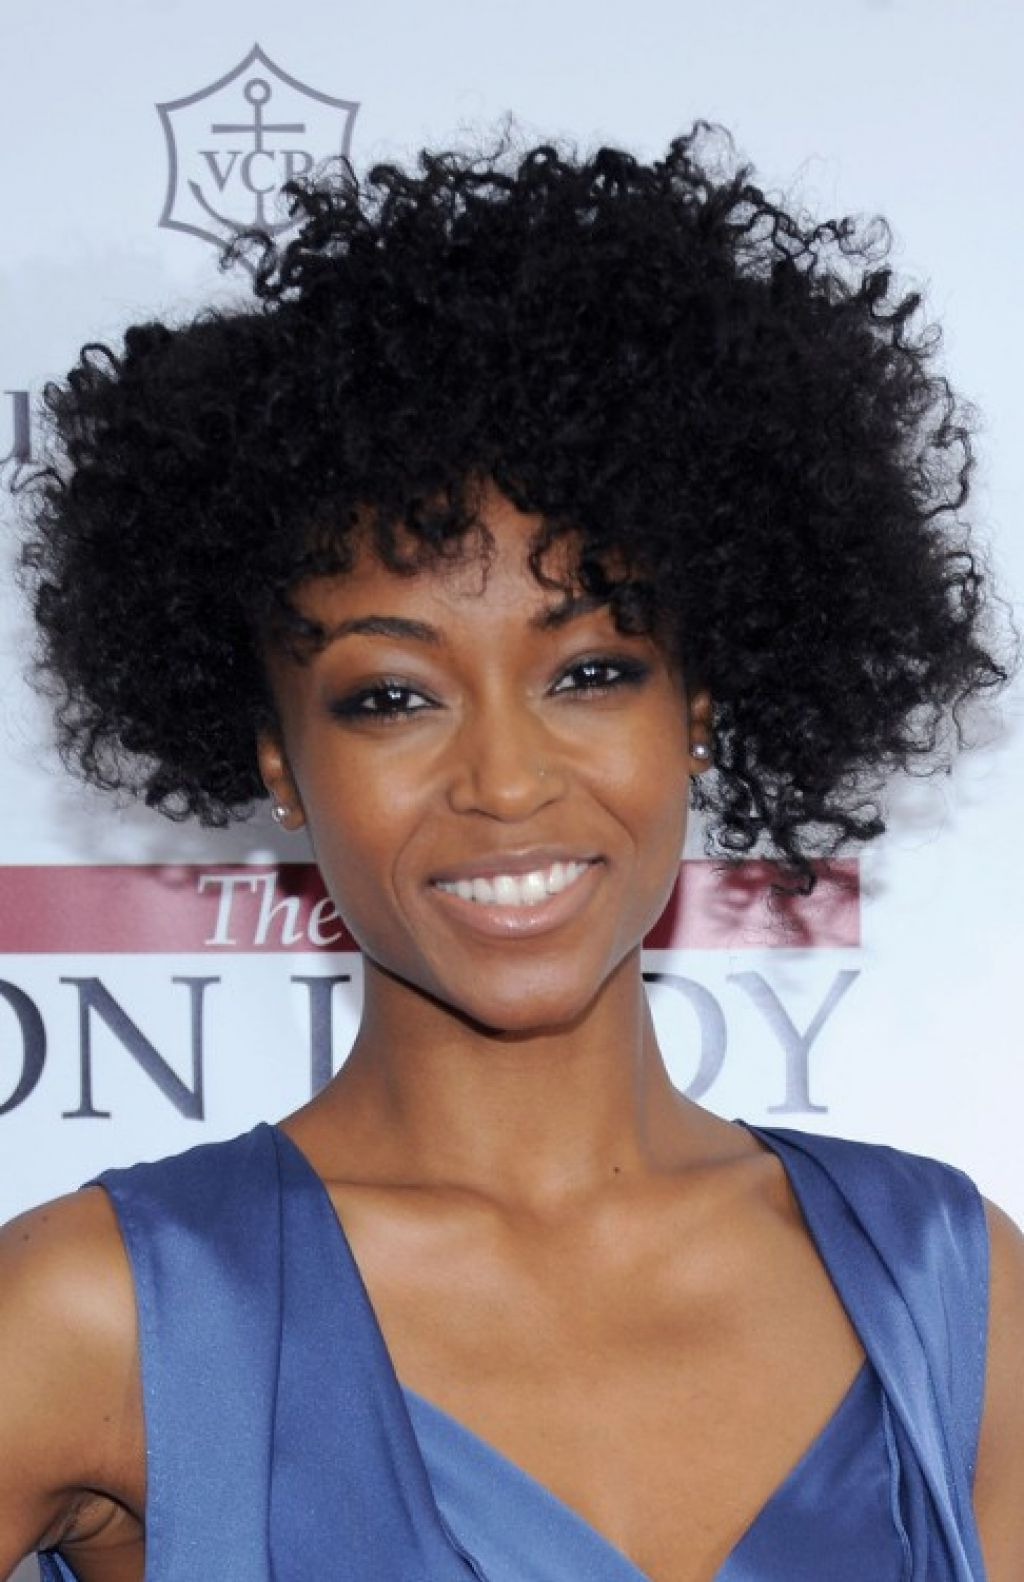 Hairstyles Oval Face Thin Hair   Best Short Haircut For Oval Face Pertaining To Short Hairstyles For Black Women With Oval Faces (View 25 of 25)